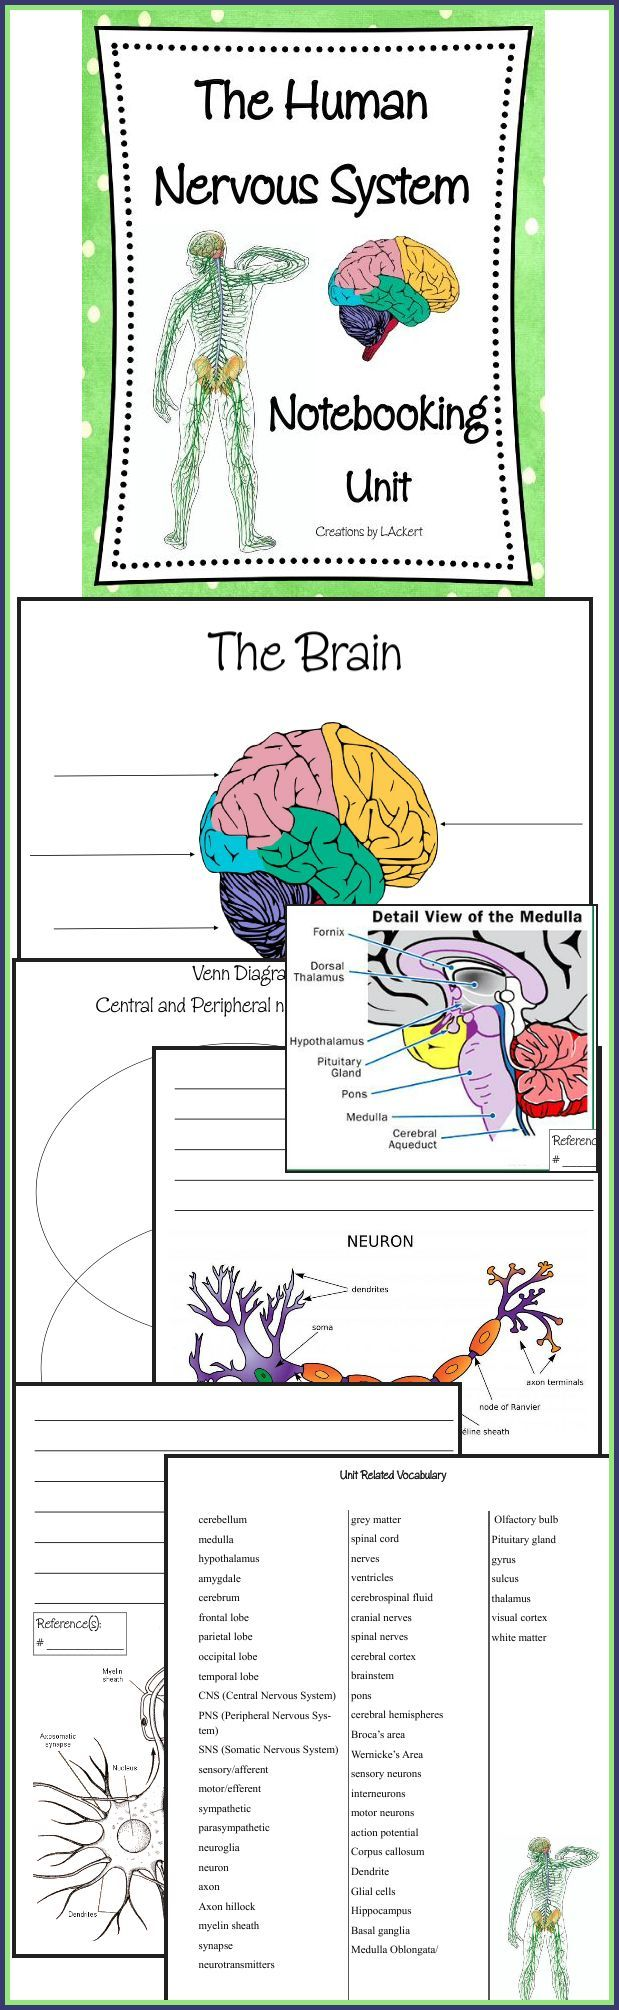 an analysis of the topic of the body systems The human body as conceived by medical science is a system made of systems the body is divided into bodily systems proper, such as the endocrine and circulatory systems these are subdivded into many subsystems at a variety of levels whereby all systems and subsystems engage in massive causal interaction with other systems and subsystems.